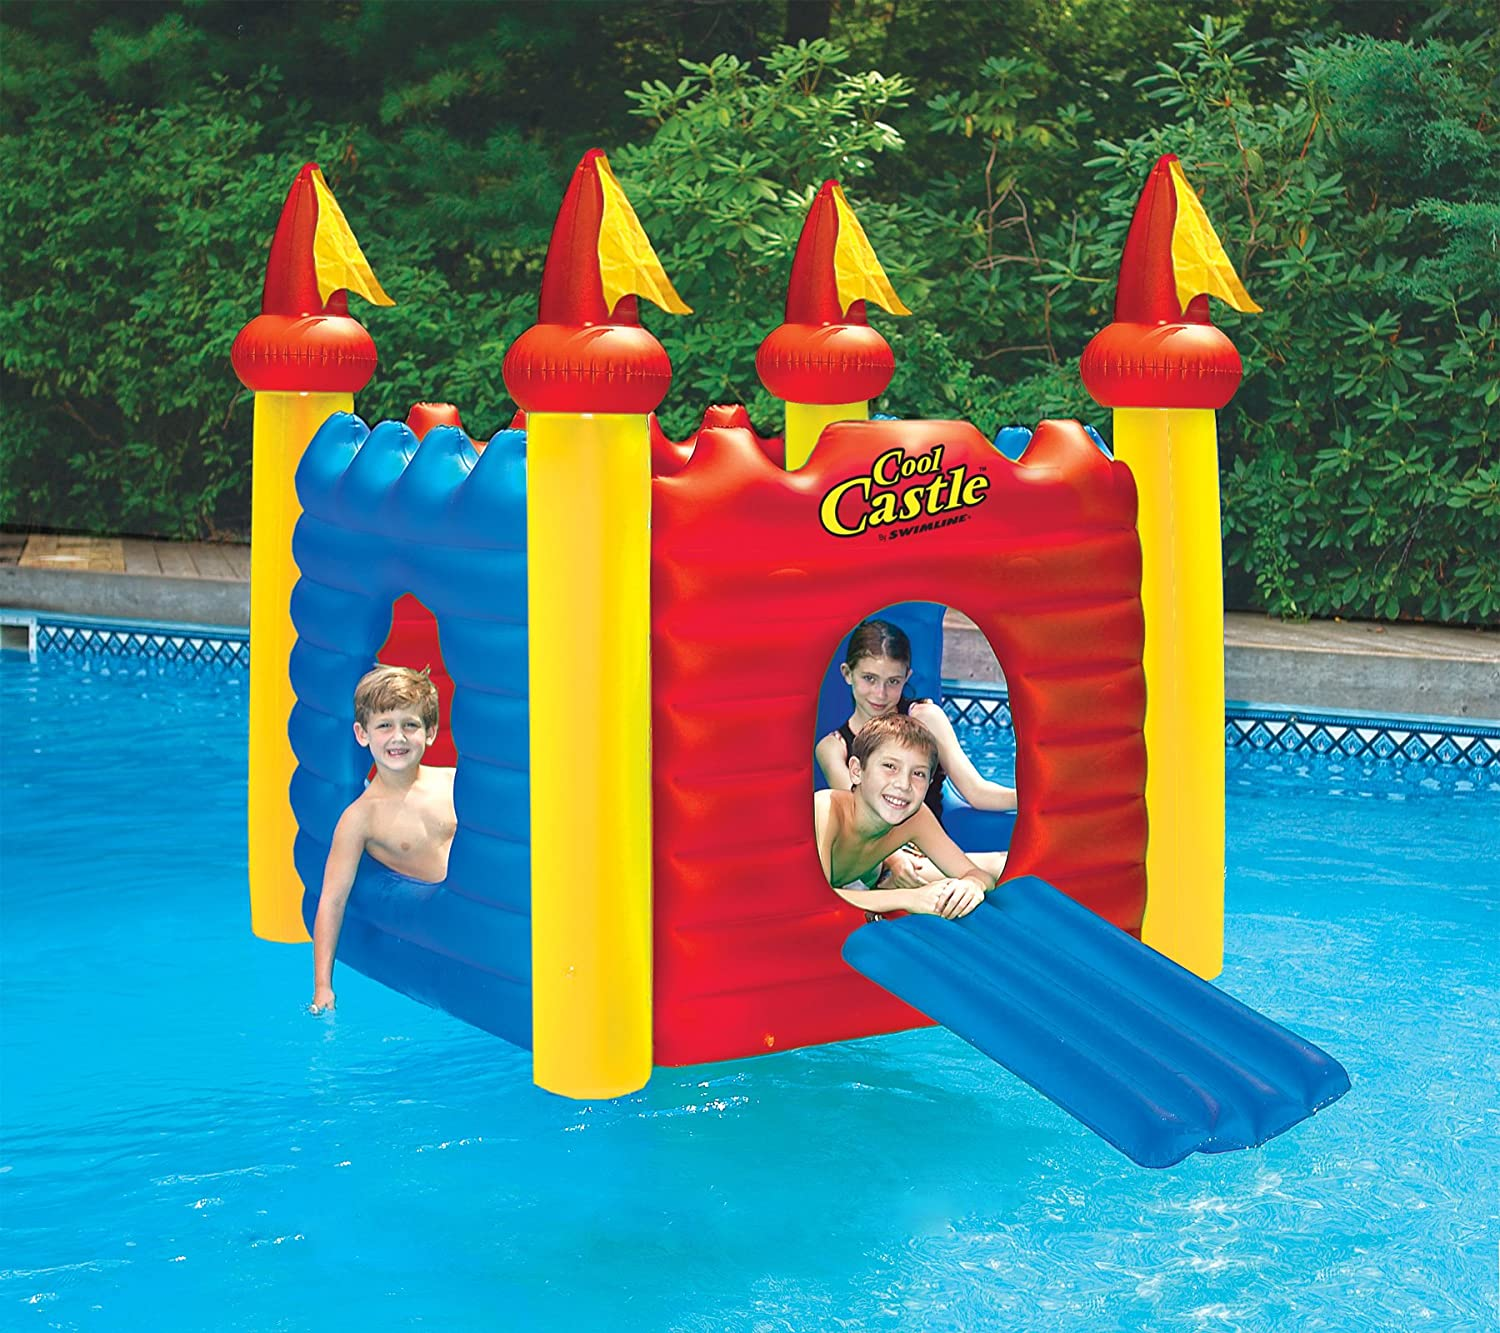 Amazon Swimline Cool Castle Inflatable Playhouse and Pool